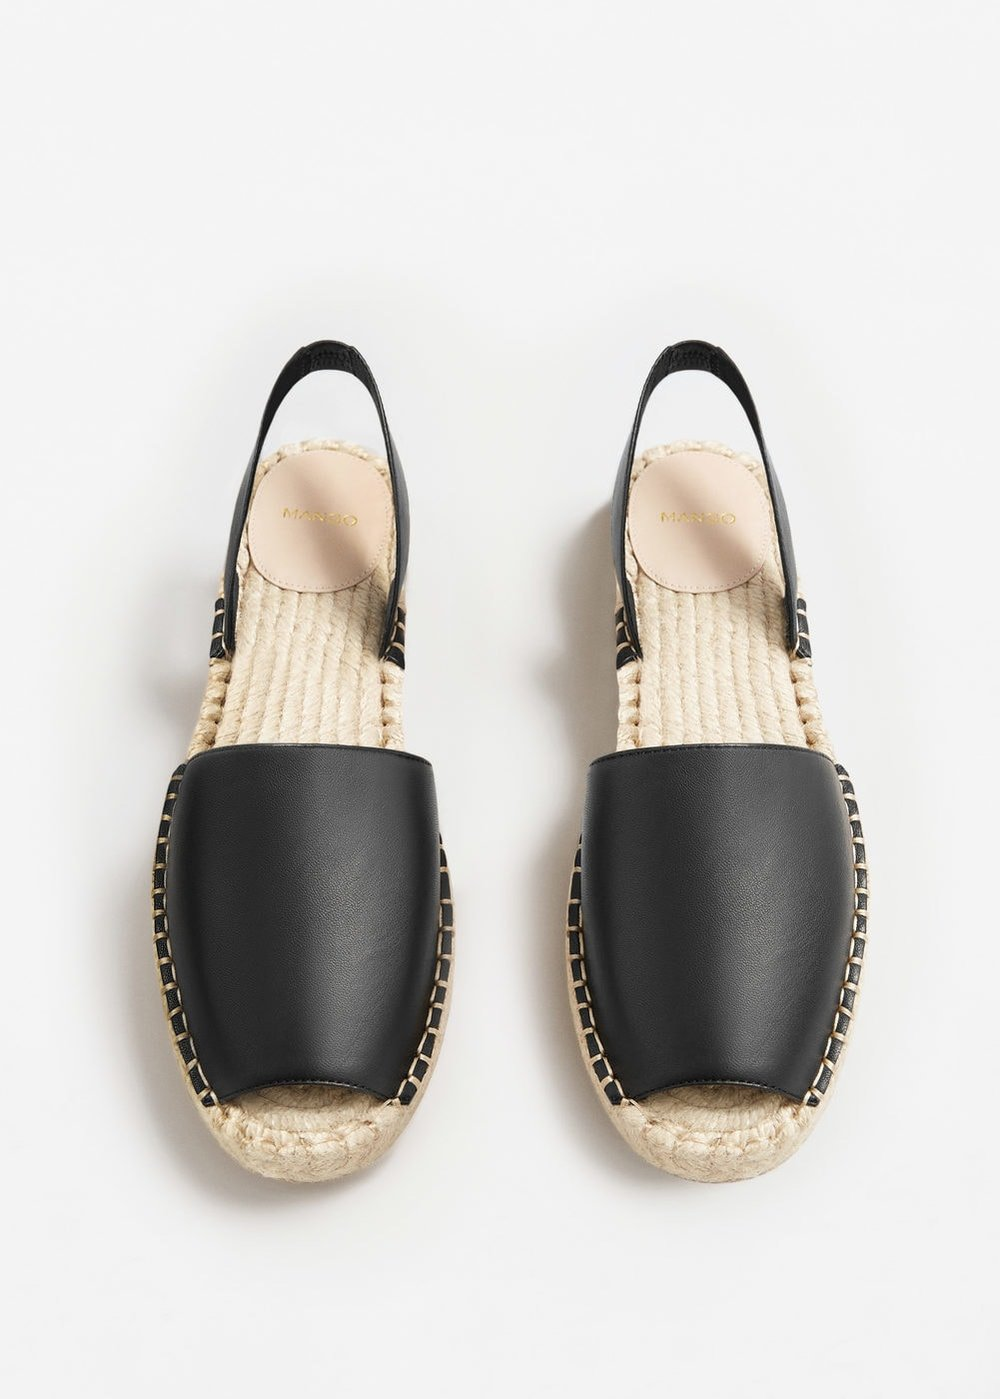 Leather Blend Espadrilles, Mango, £35.99